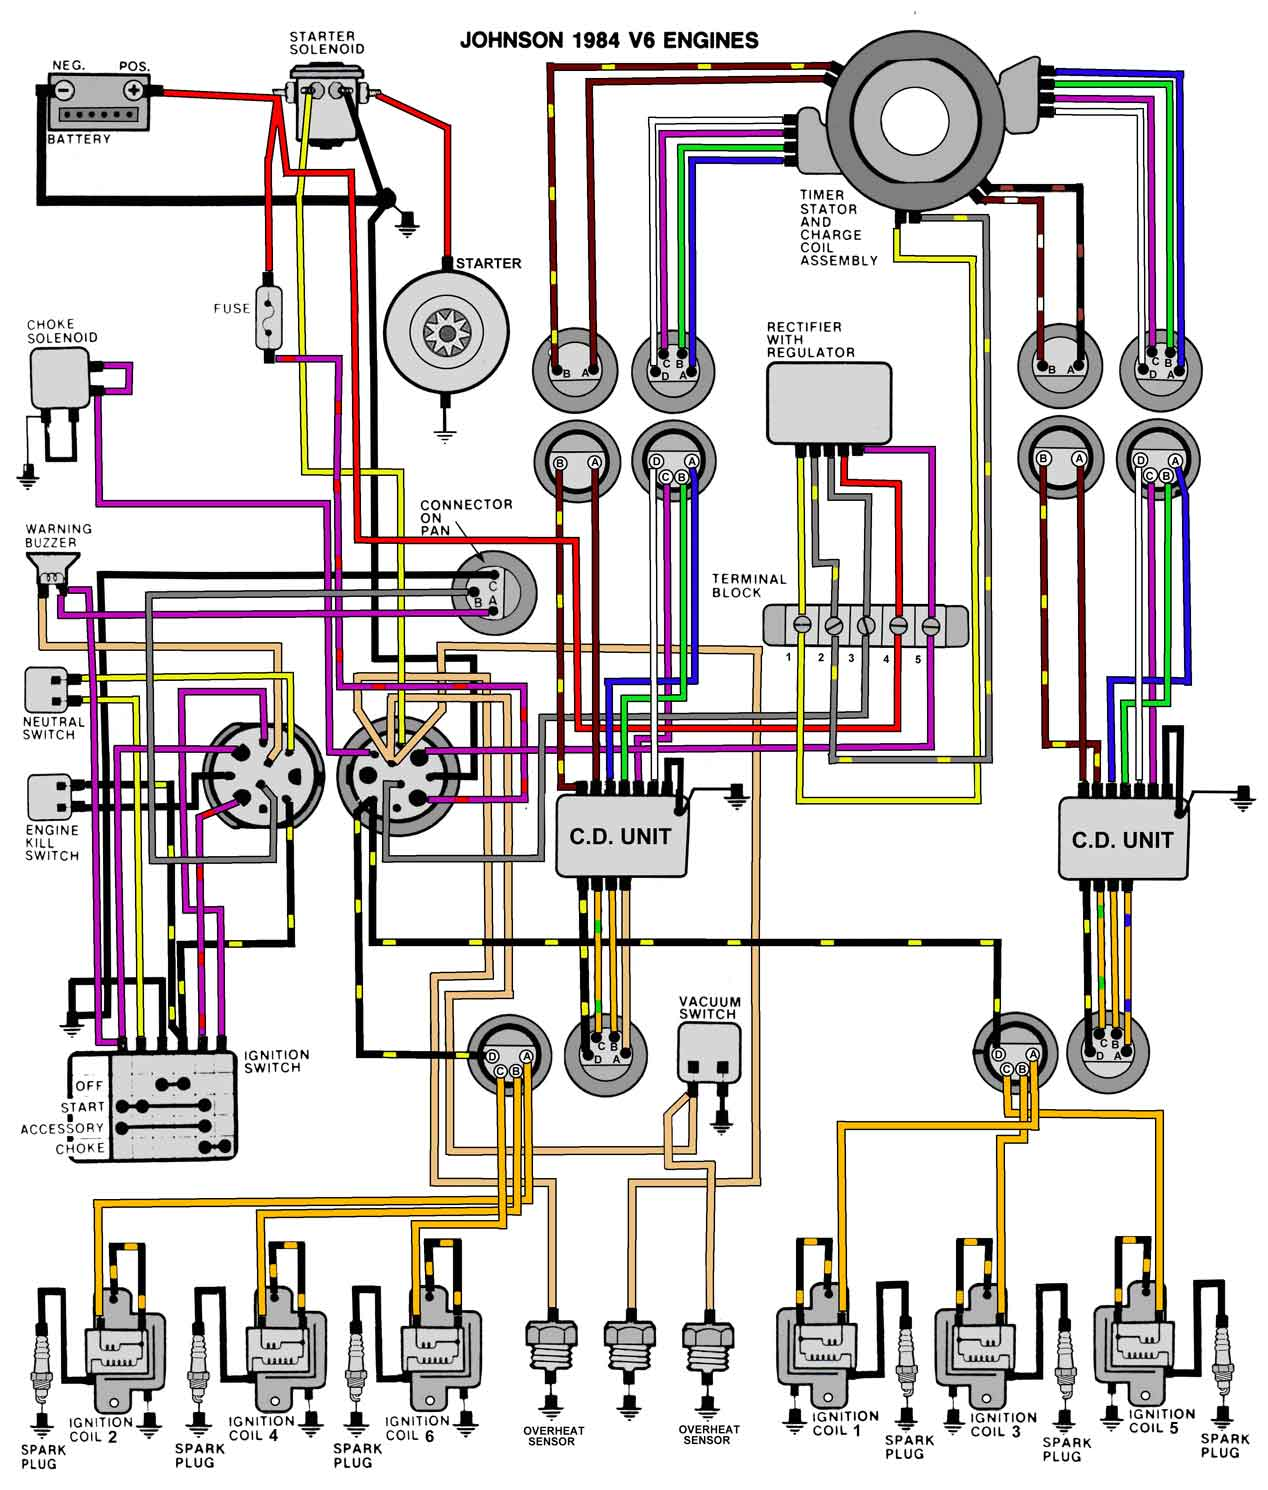 84_V6 johnson wiring harness diagram on johnson download wirning diagrams marine engine wiring harness at eliteediting.co